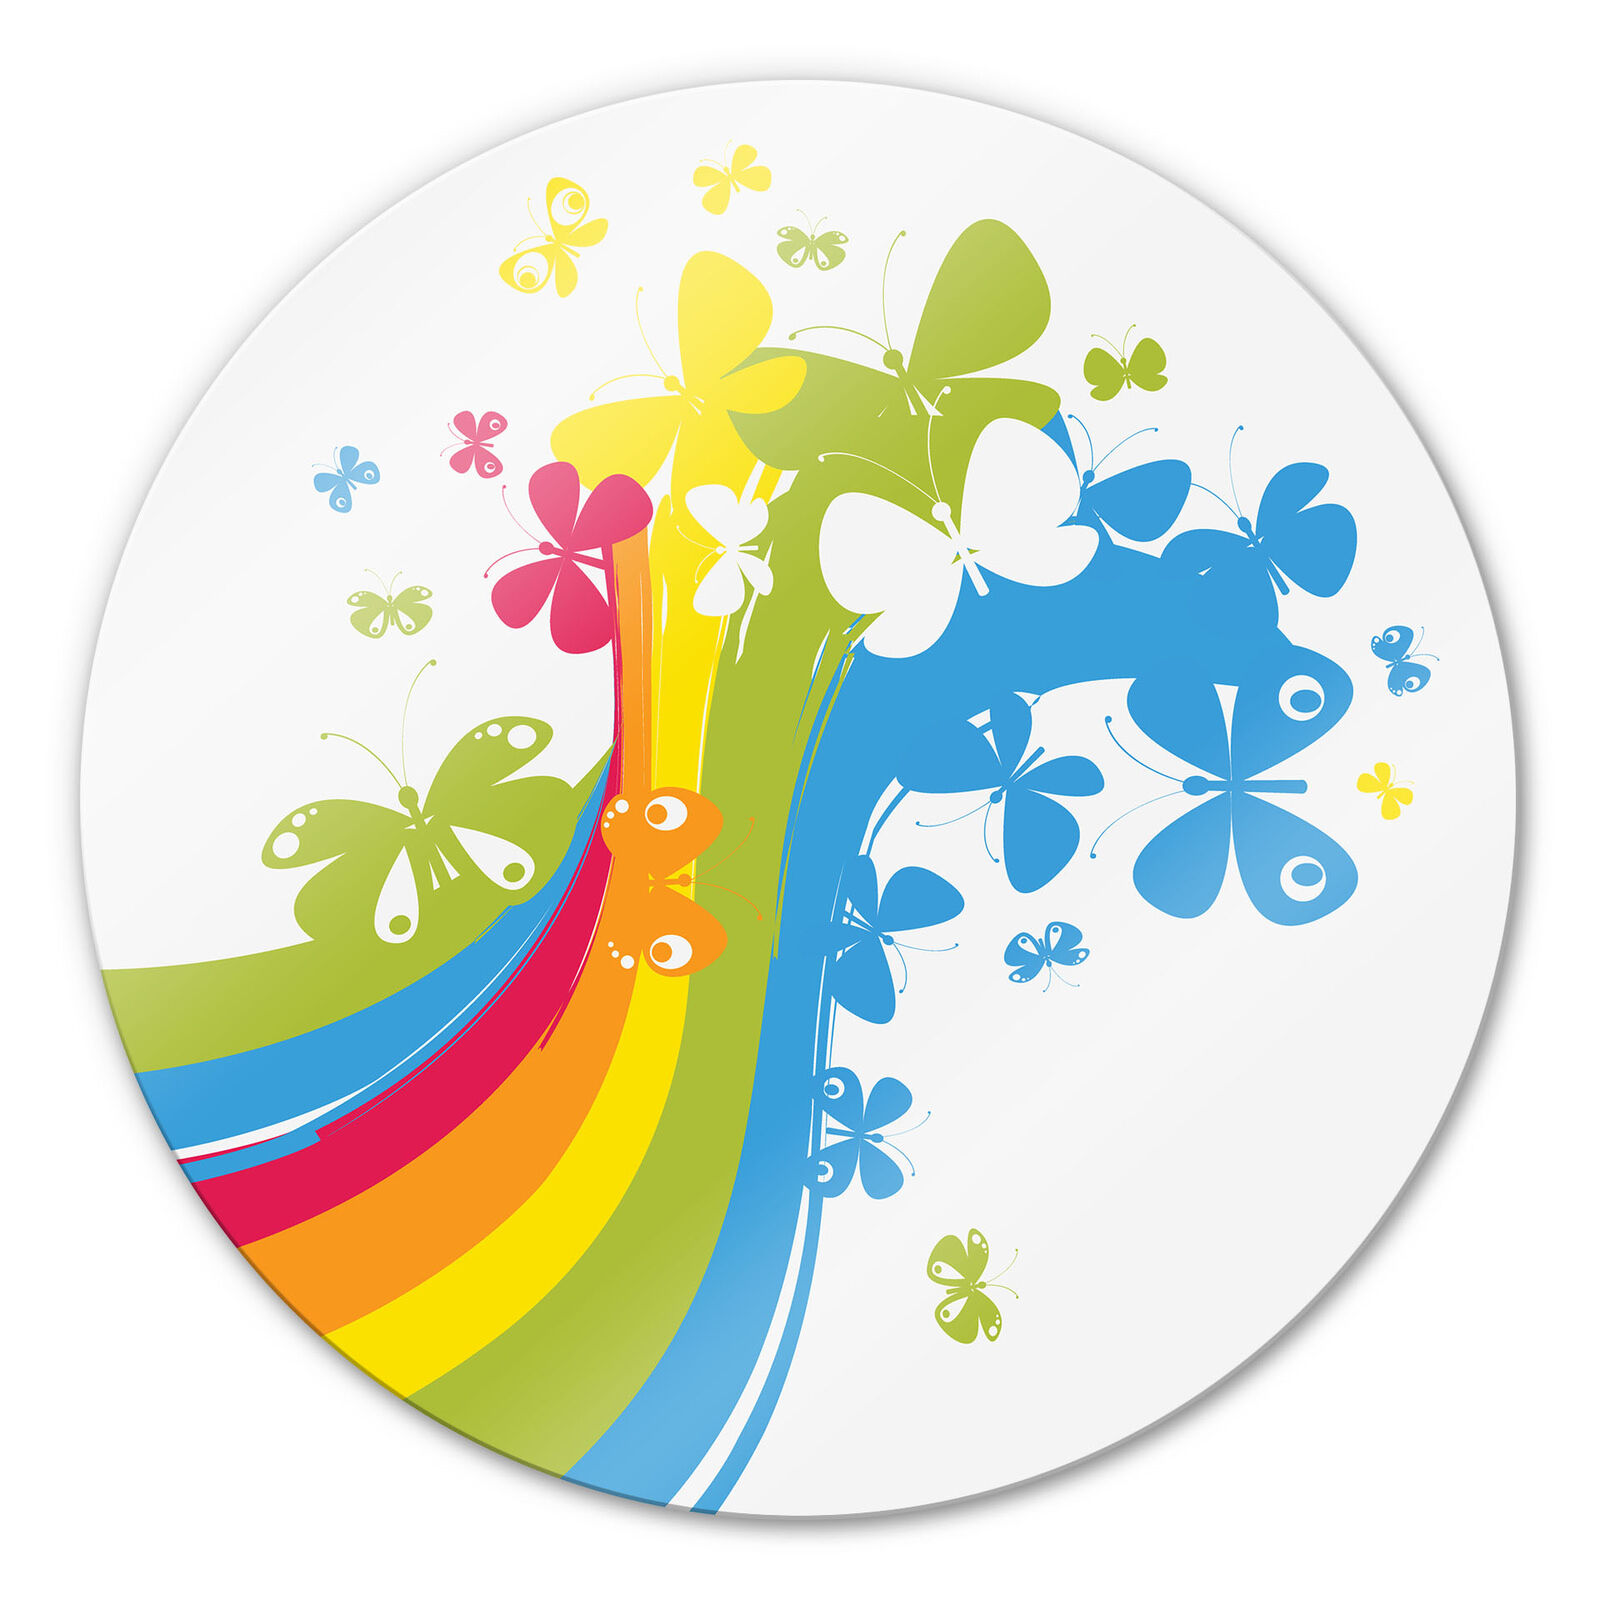 Glass Picture papillon Rainbow Round Couleurful Wall Picture 4mm ESG safety glass deco